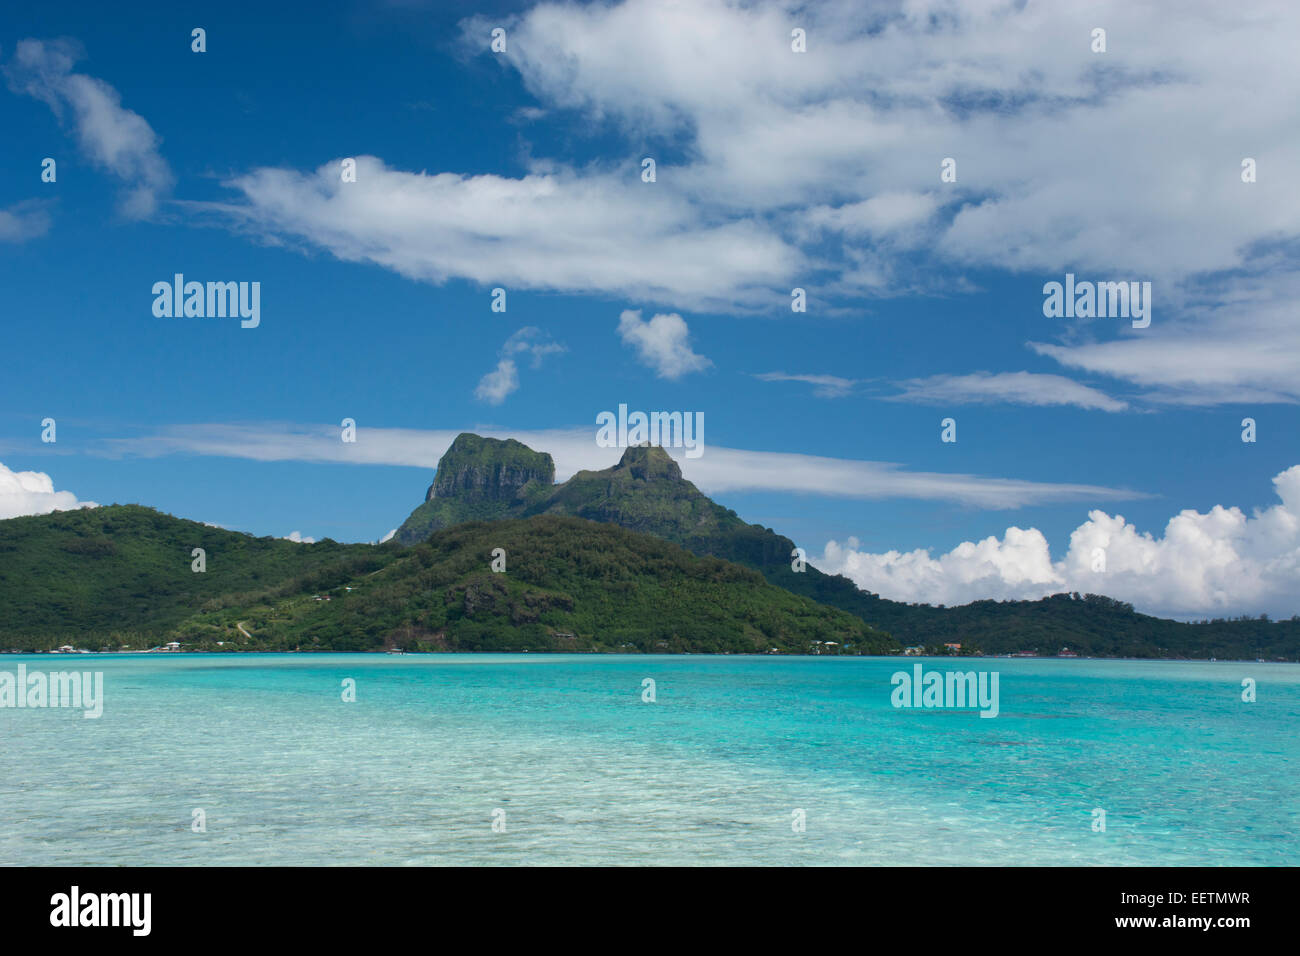 French Polynesia, Society Islands, Leeward Islands, Bora Bora. View of Bora Bora's volcanic landscape. Stock Photo